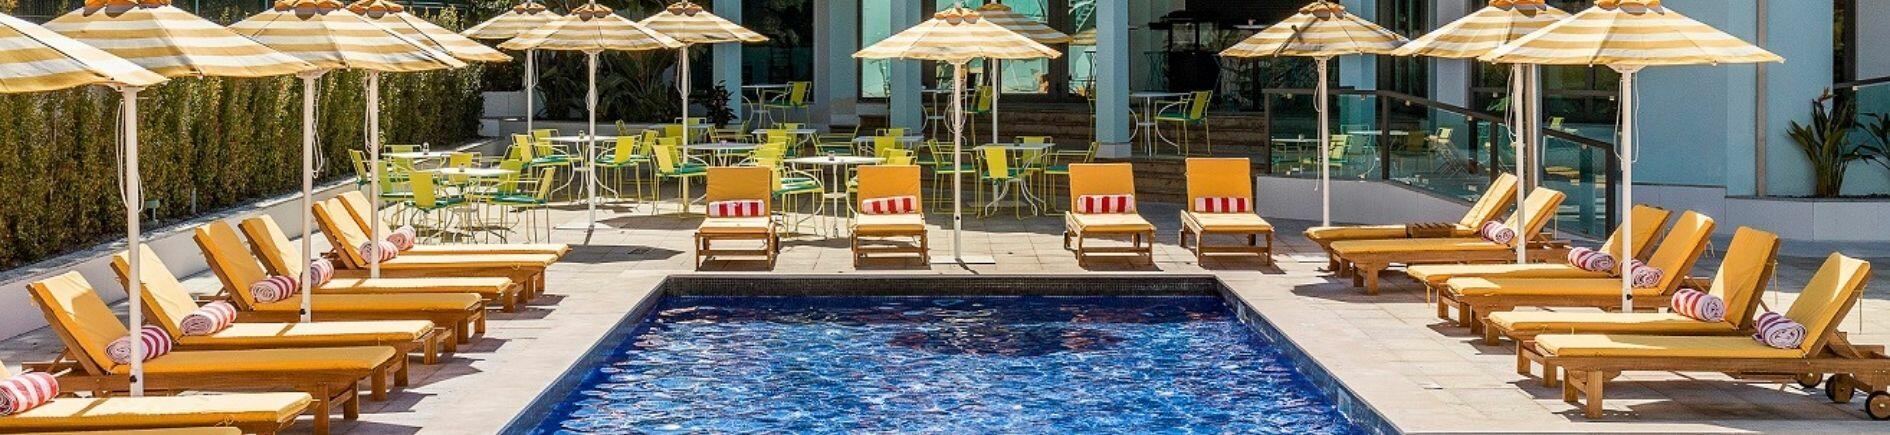 Exterior pool side - The Magnolia Hotel